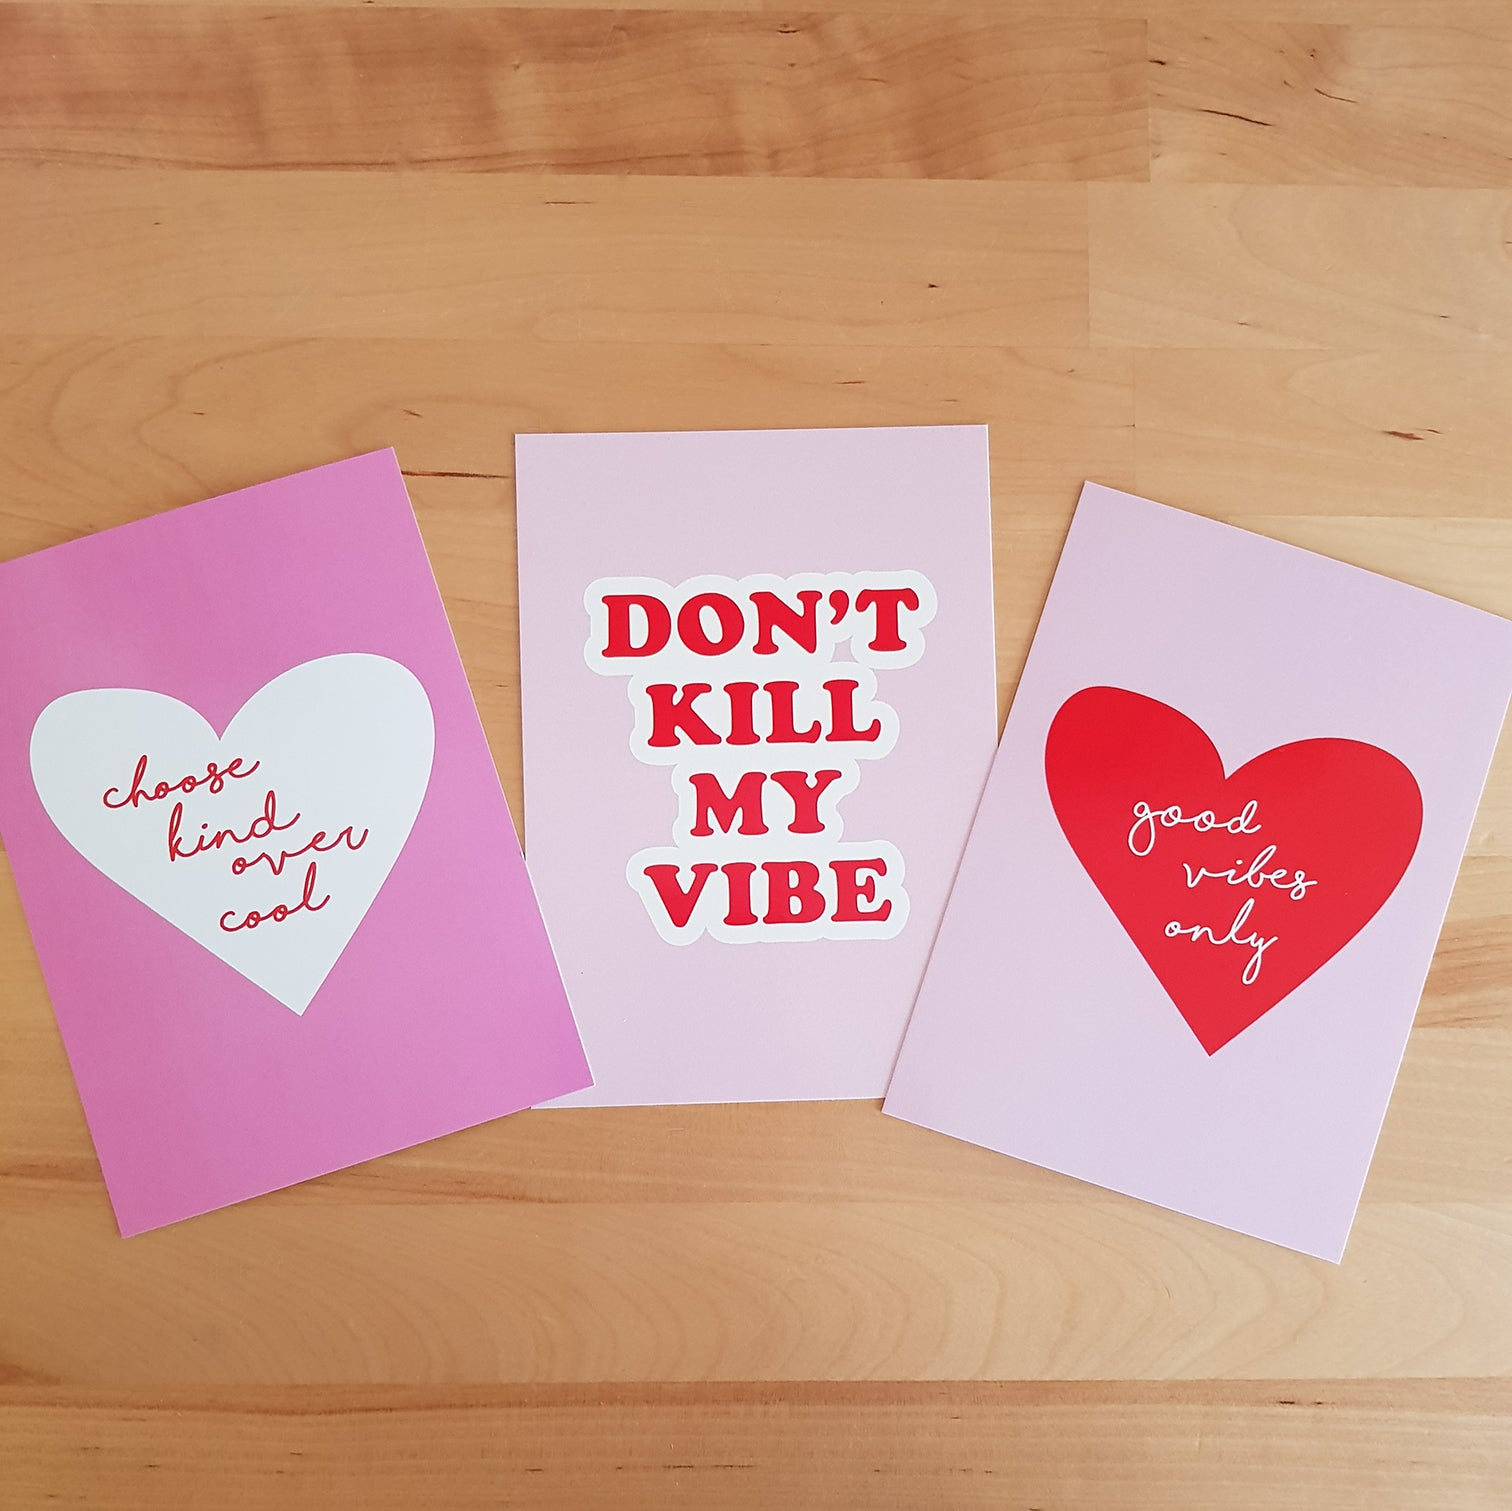 Set of 3 x postcards - The pink and red crew - Good Vibes Only, Choose Kind Over Cool, Don't Kill My Vibe. *Free shipping in Aust